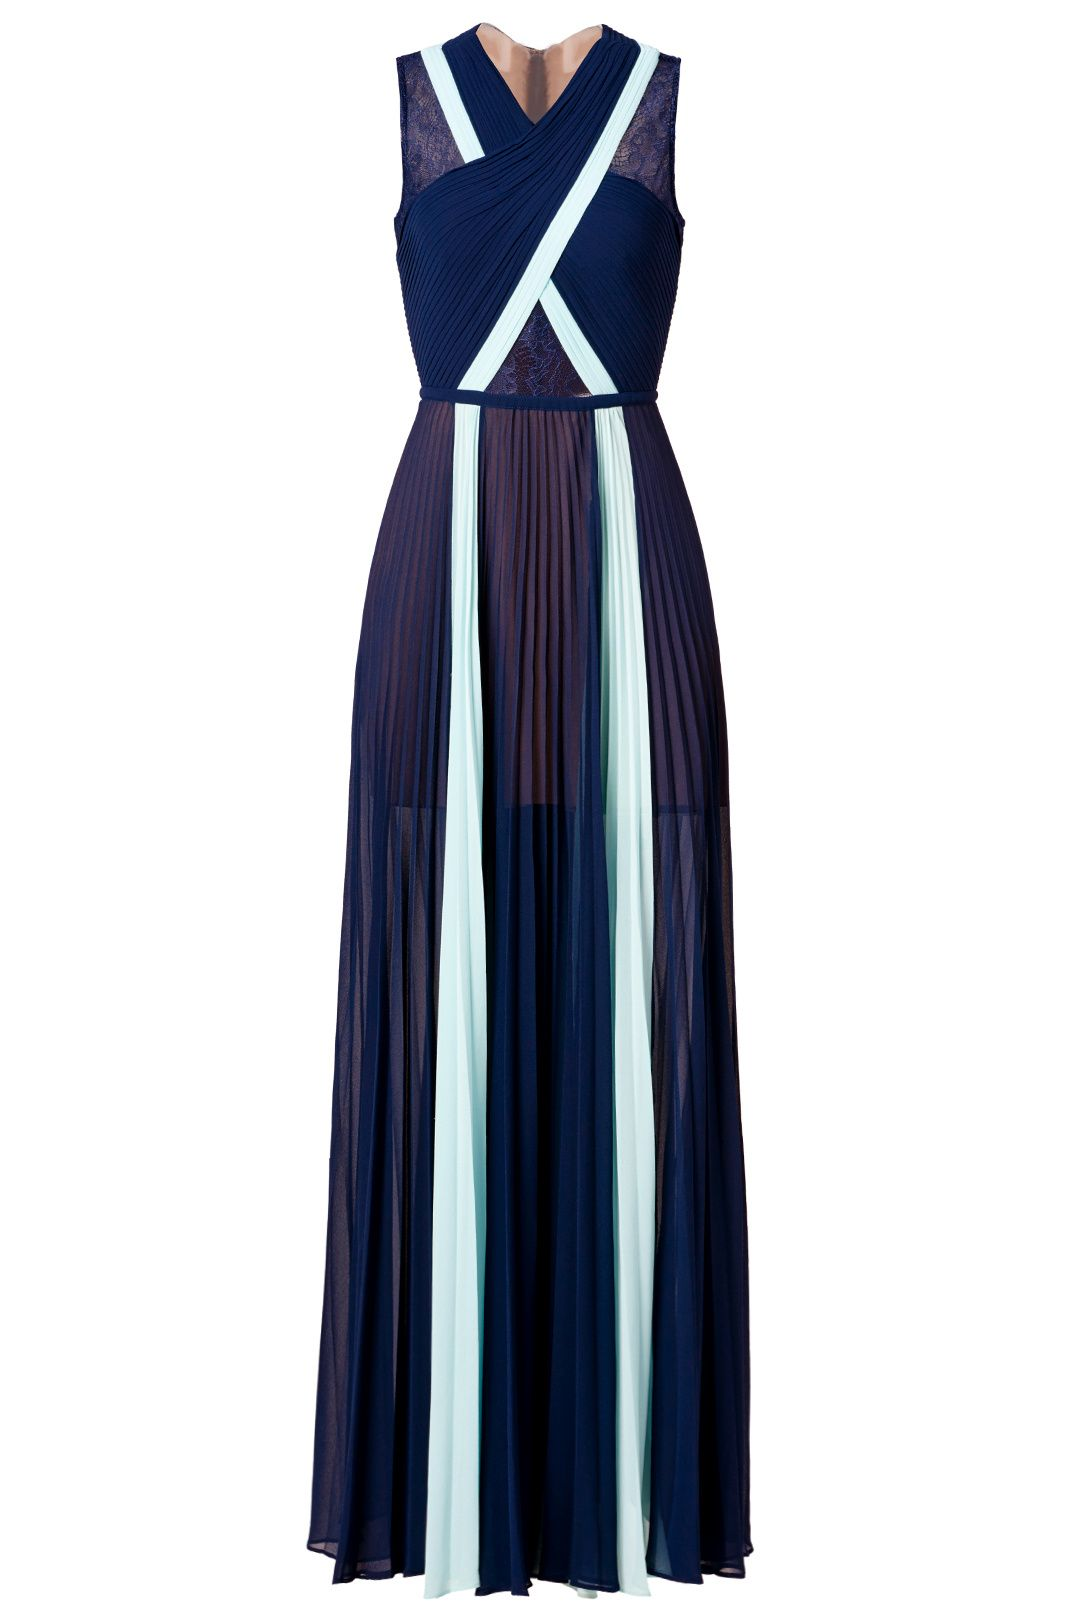 Contrast caia gown gowns designers and formal